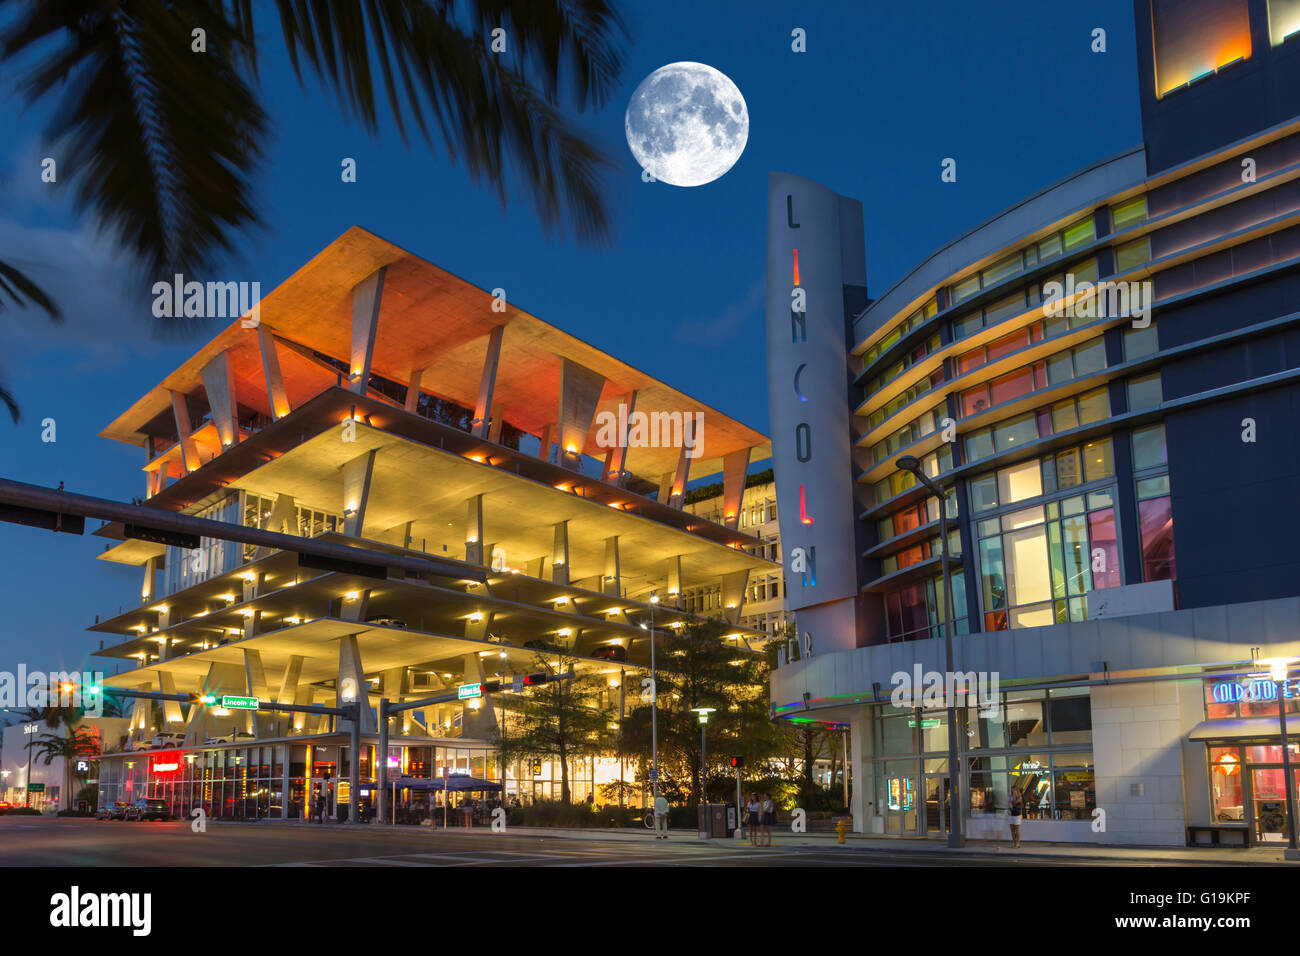 Stock Photo 1111 Lincoln Road Multi Level Parking Garage Regal Movie Theater South 104089959 on 1111 Lincoln Road Miami Beach Usa 2010